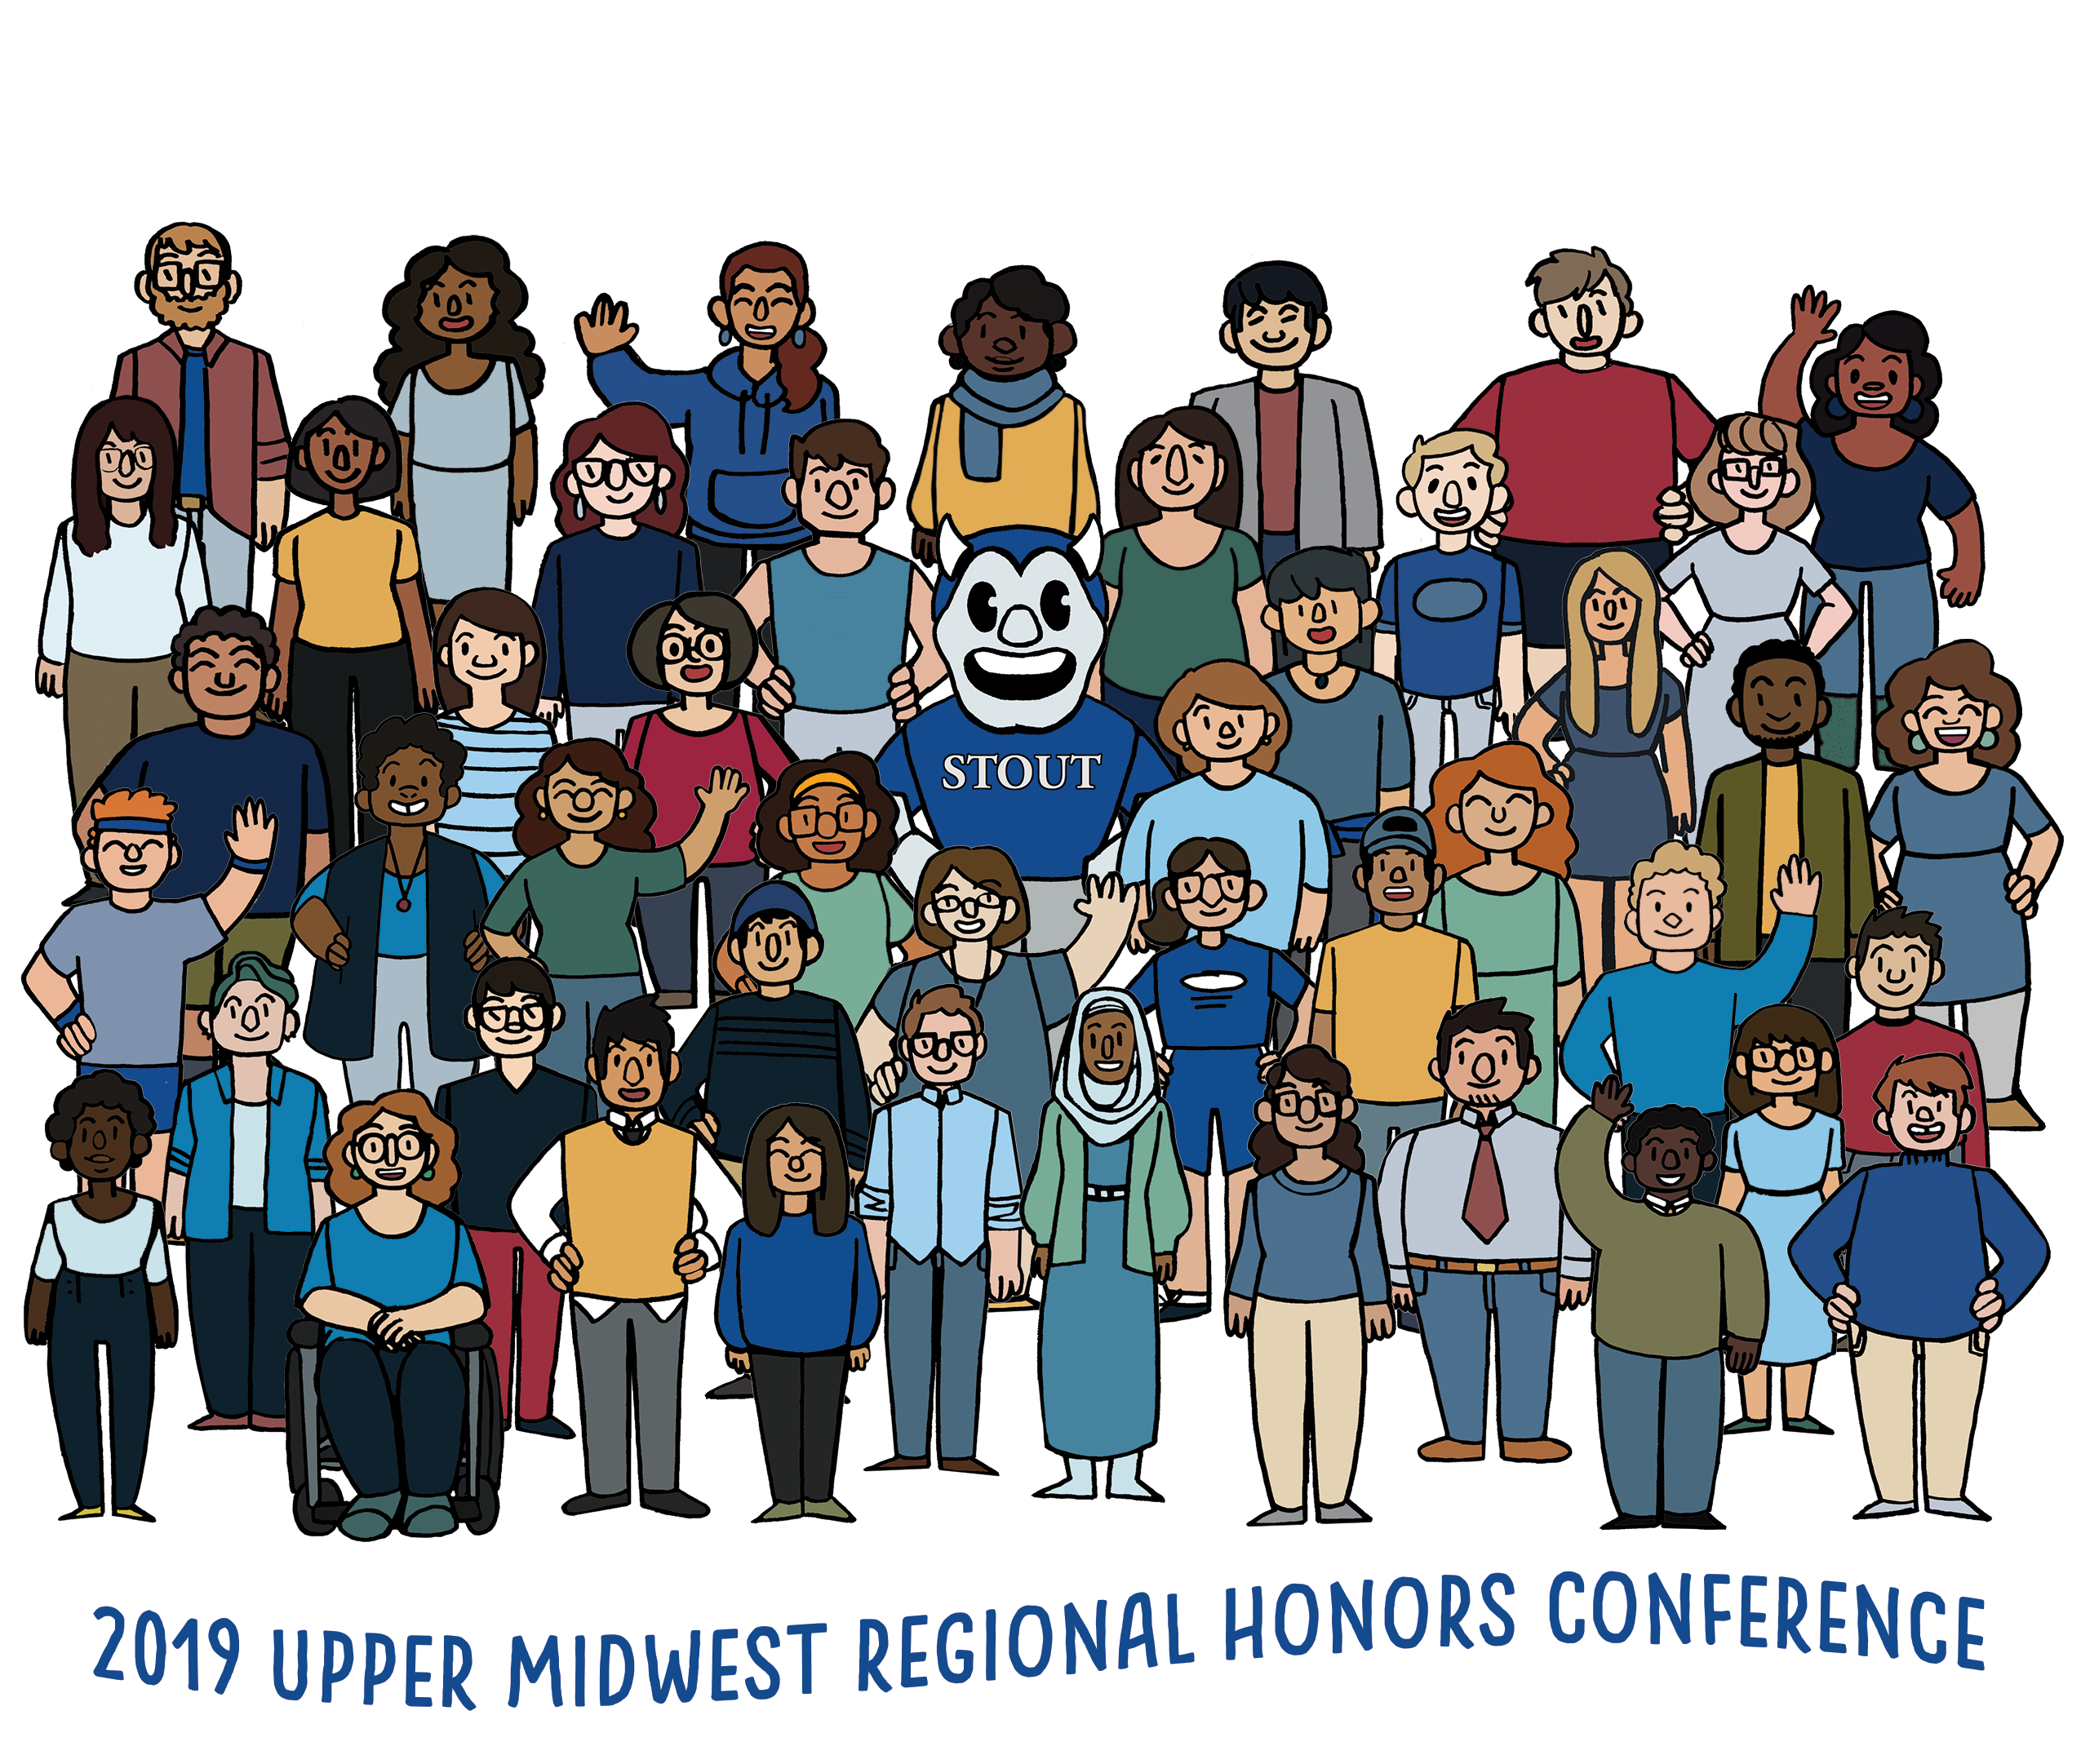 2019 Upper Midwest Honors Conference Logo - group of cartoon students and UW-Stout mascot Blaze